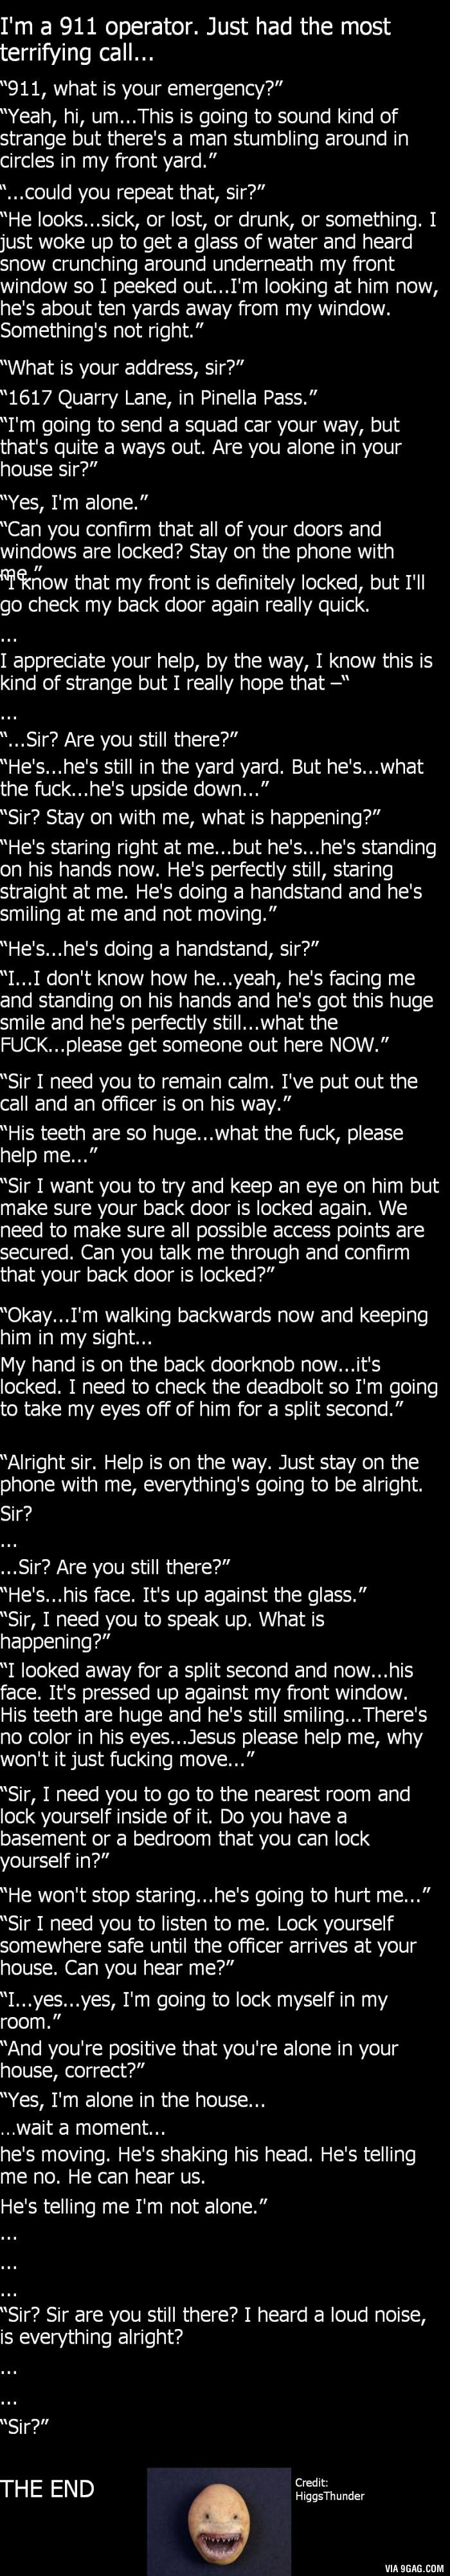 """Sir are you there?"" - 9GAG Dat moment when you didn't expect anything scary and then you read the story and realise it's dark outside and you are alone in your house"